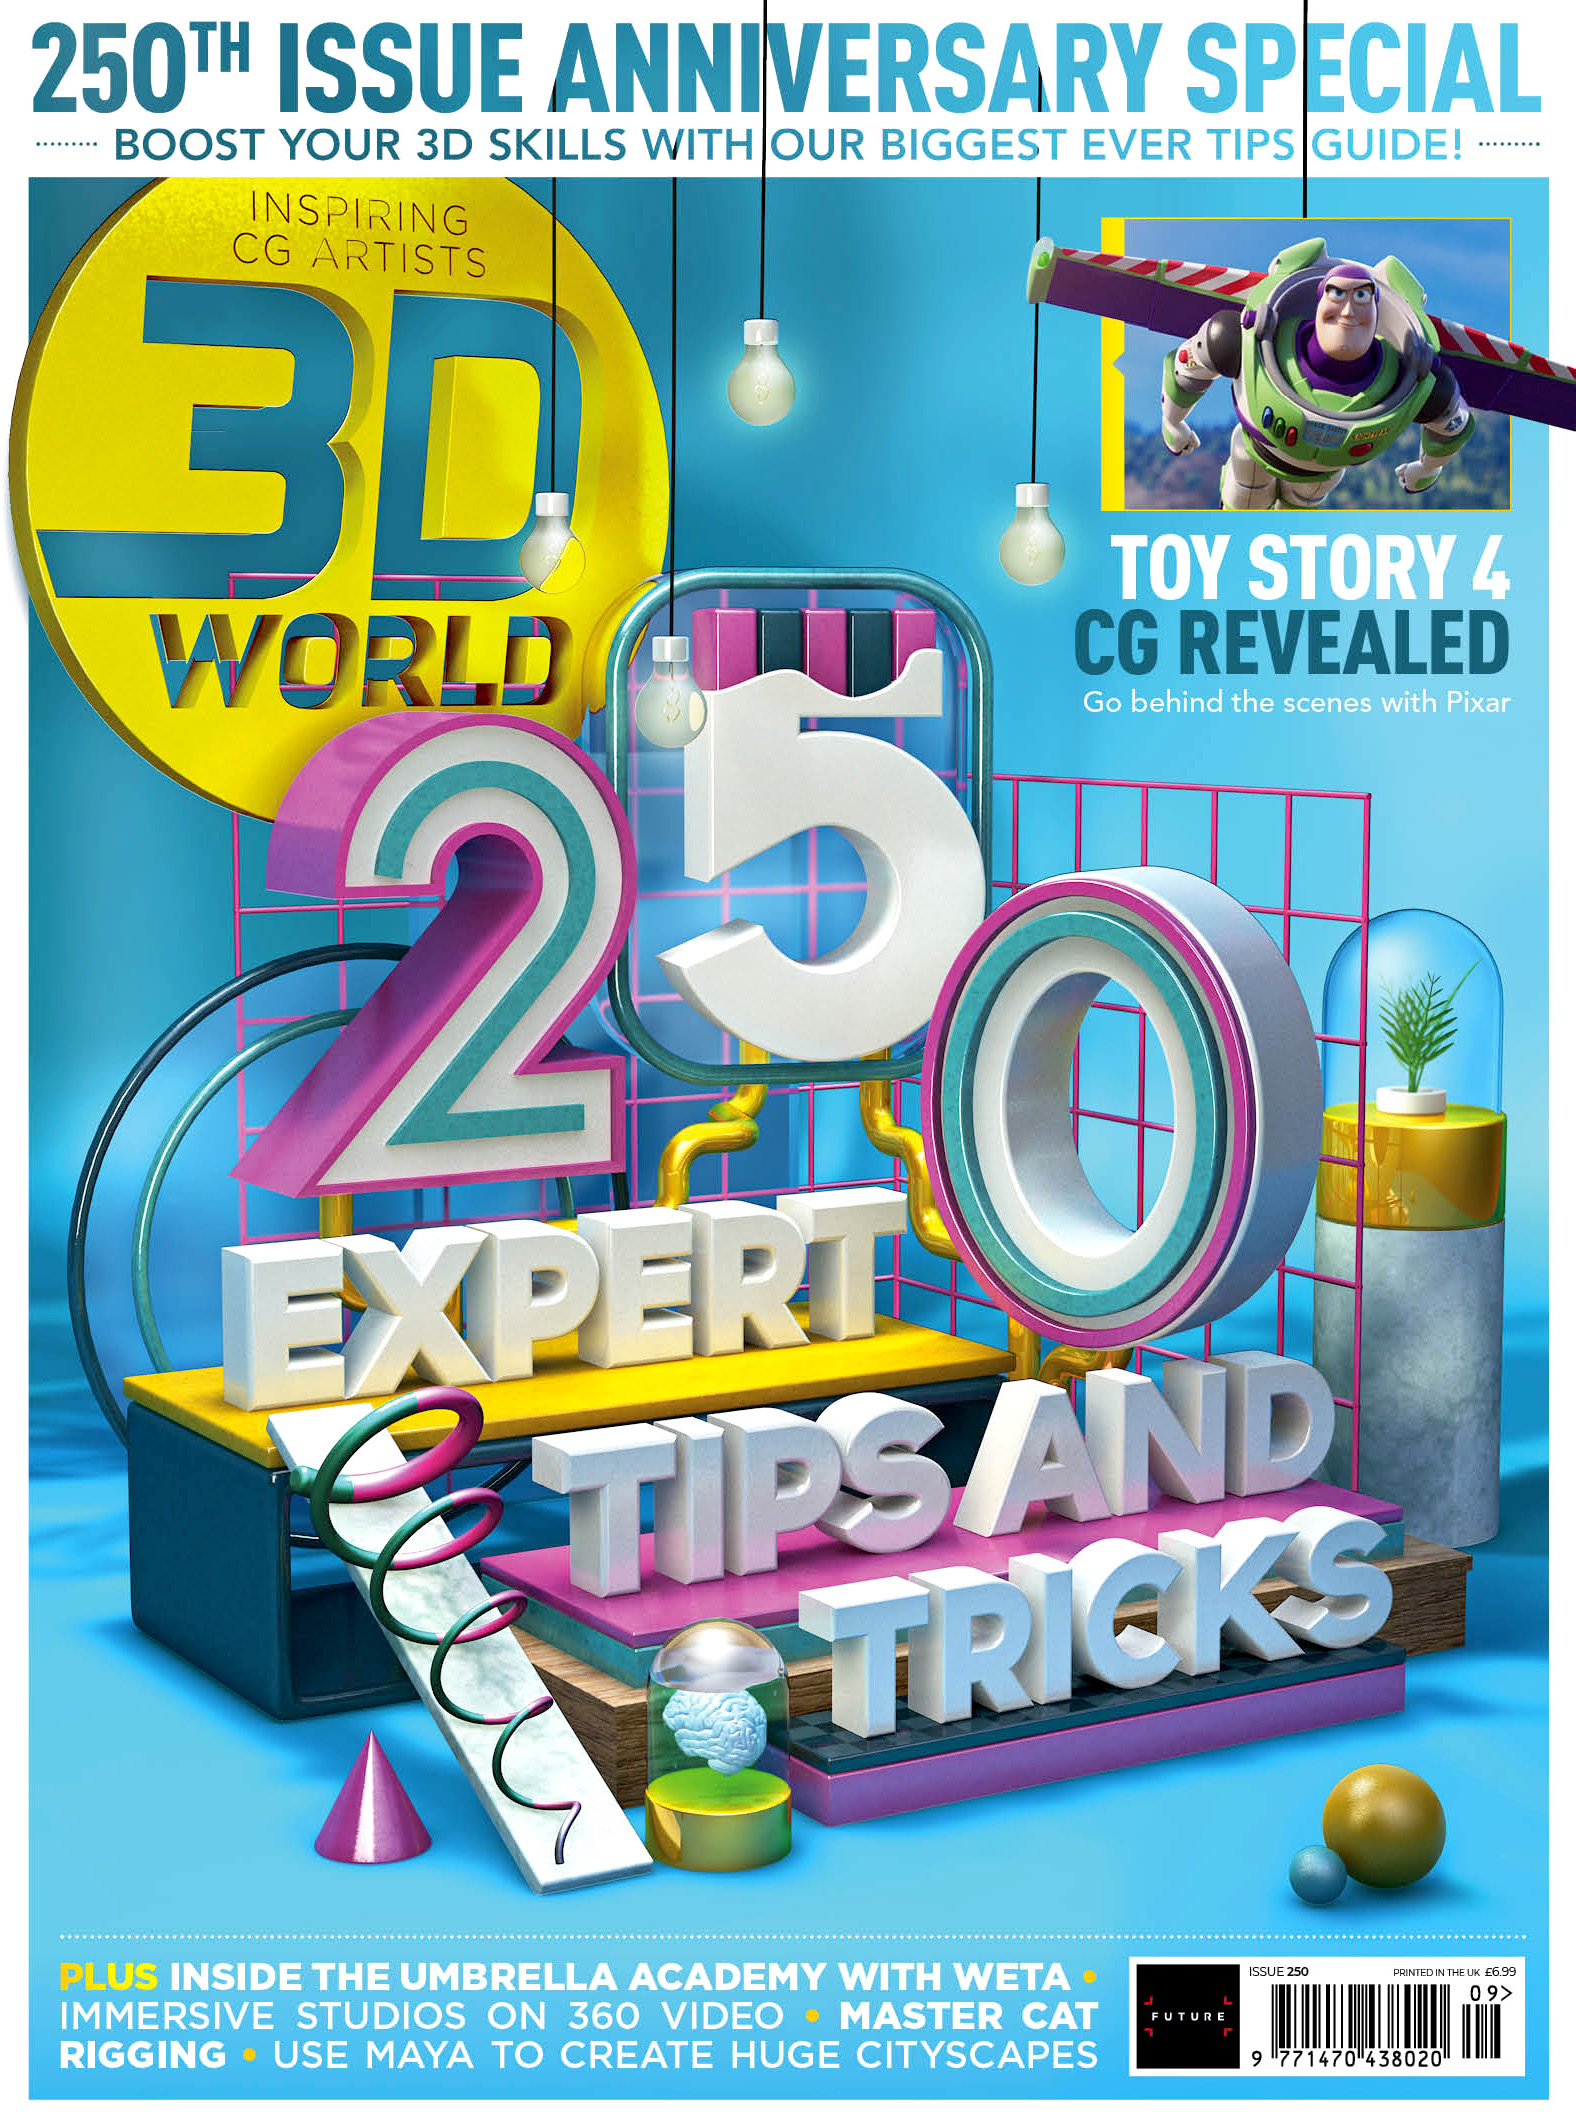 Celebrate the 250th issue of 3D World with more tips than ever before | Creative Bloq